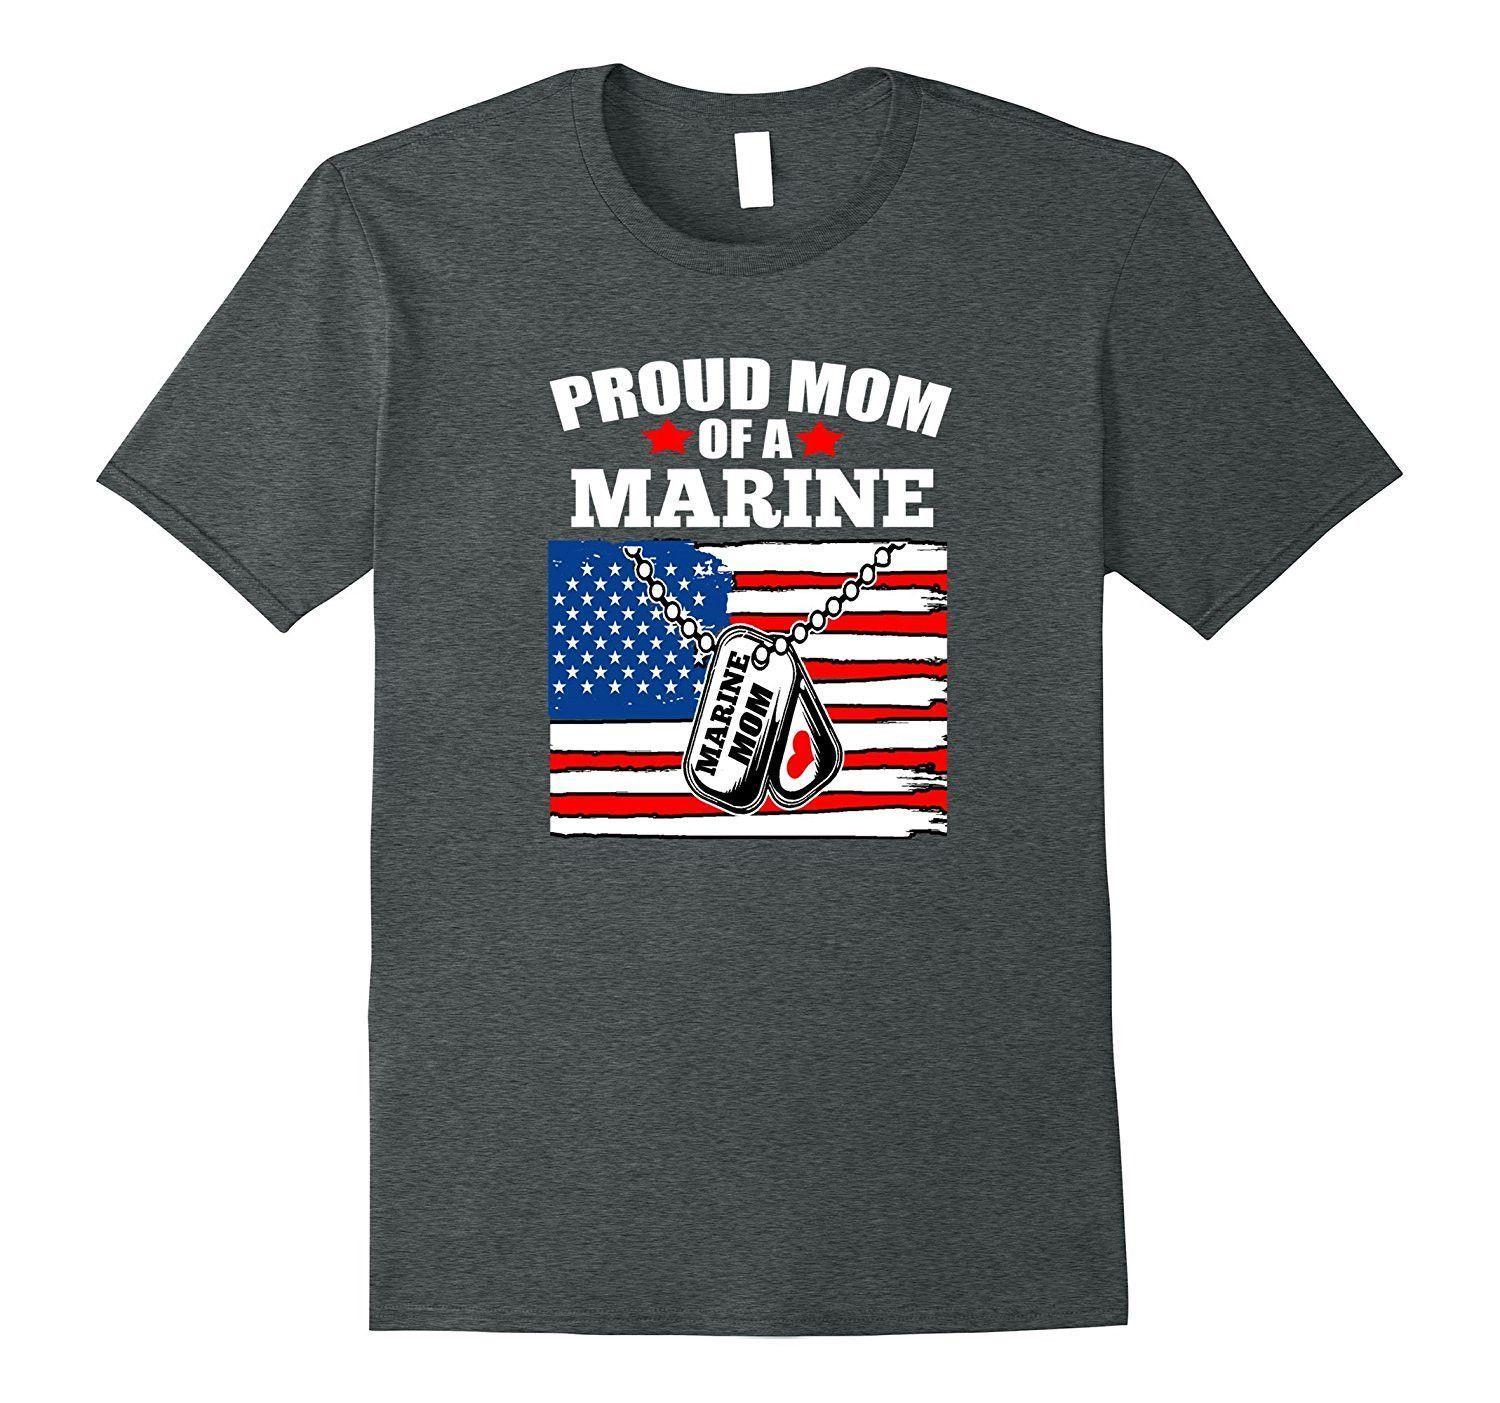 Proud mom of a marine gift for us military moms marine gifts proud mom of a marine gift for us military moms nvjuhfo Gallery